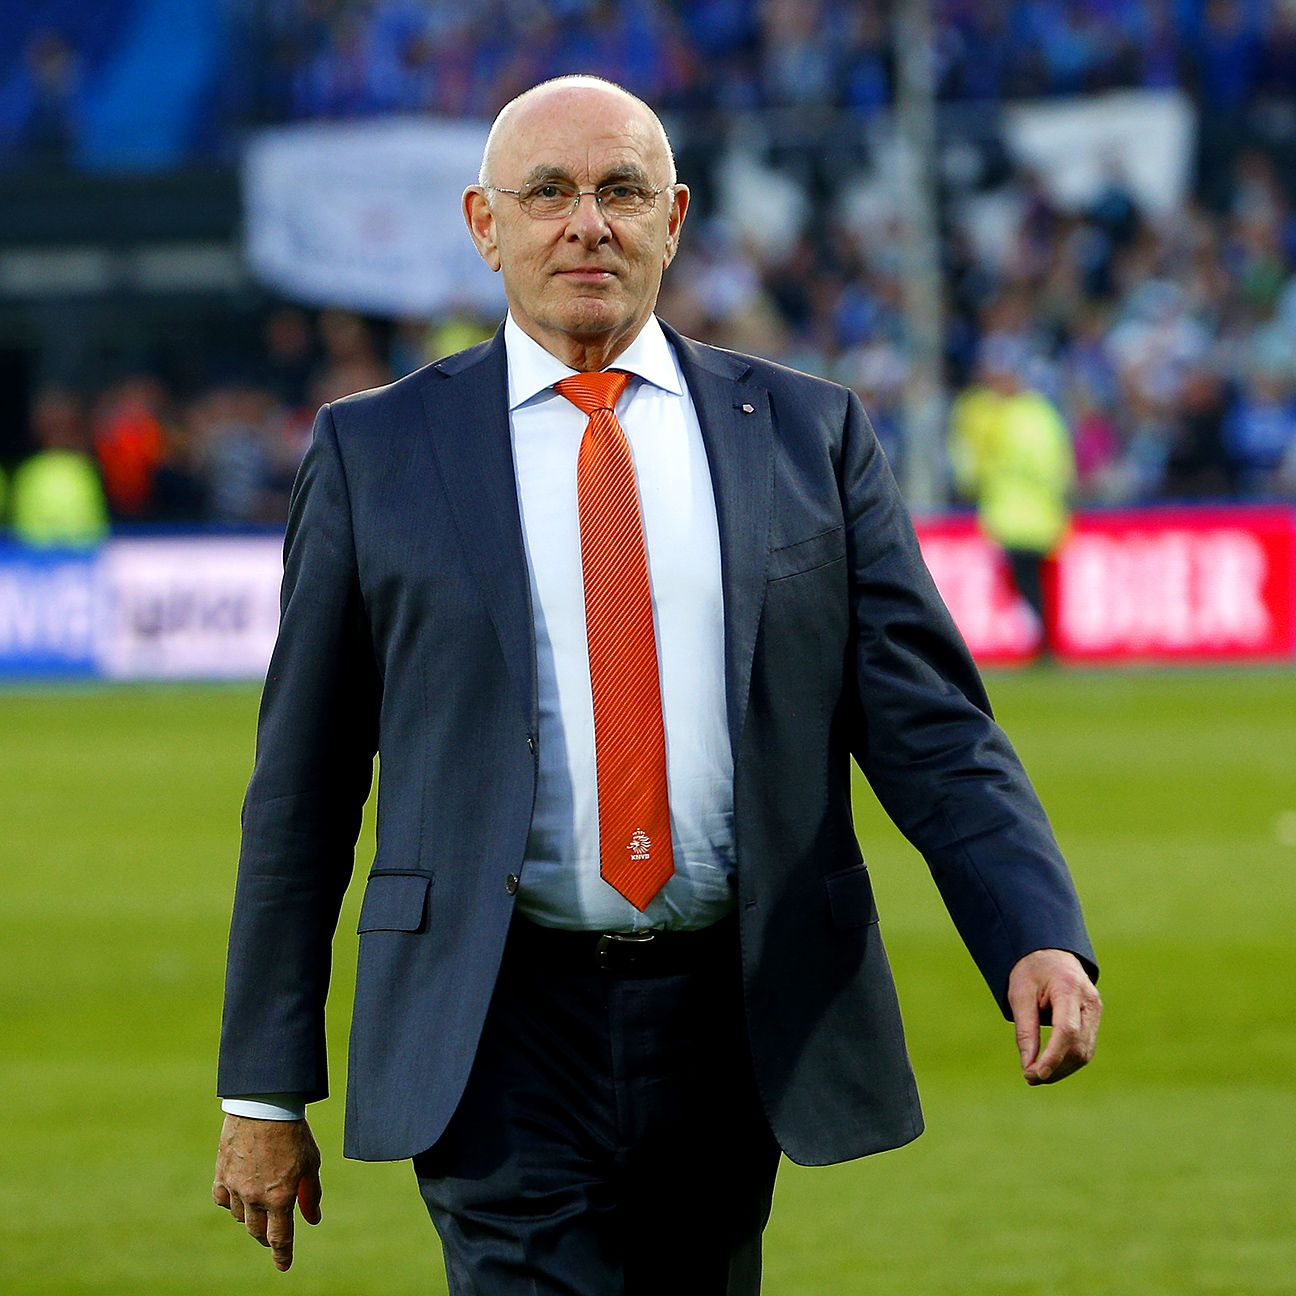 Dutch FA boss Michael van Praag has pledged that he will only sit for one term if elected.